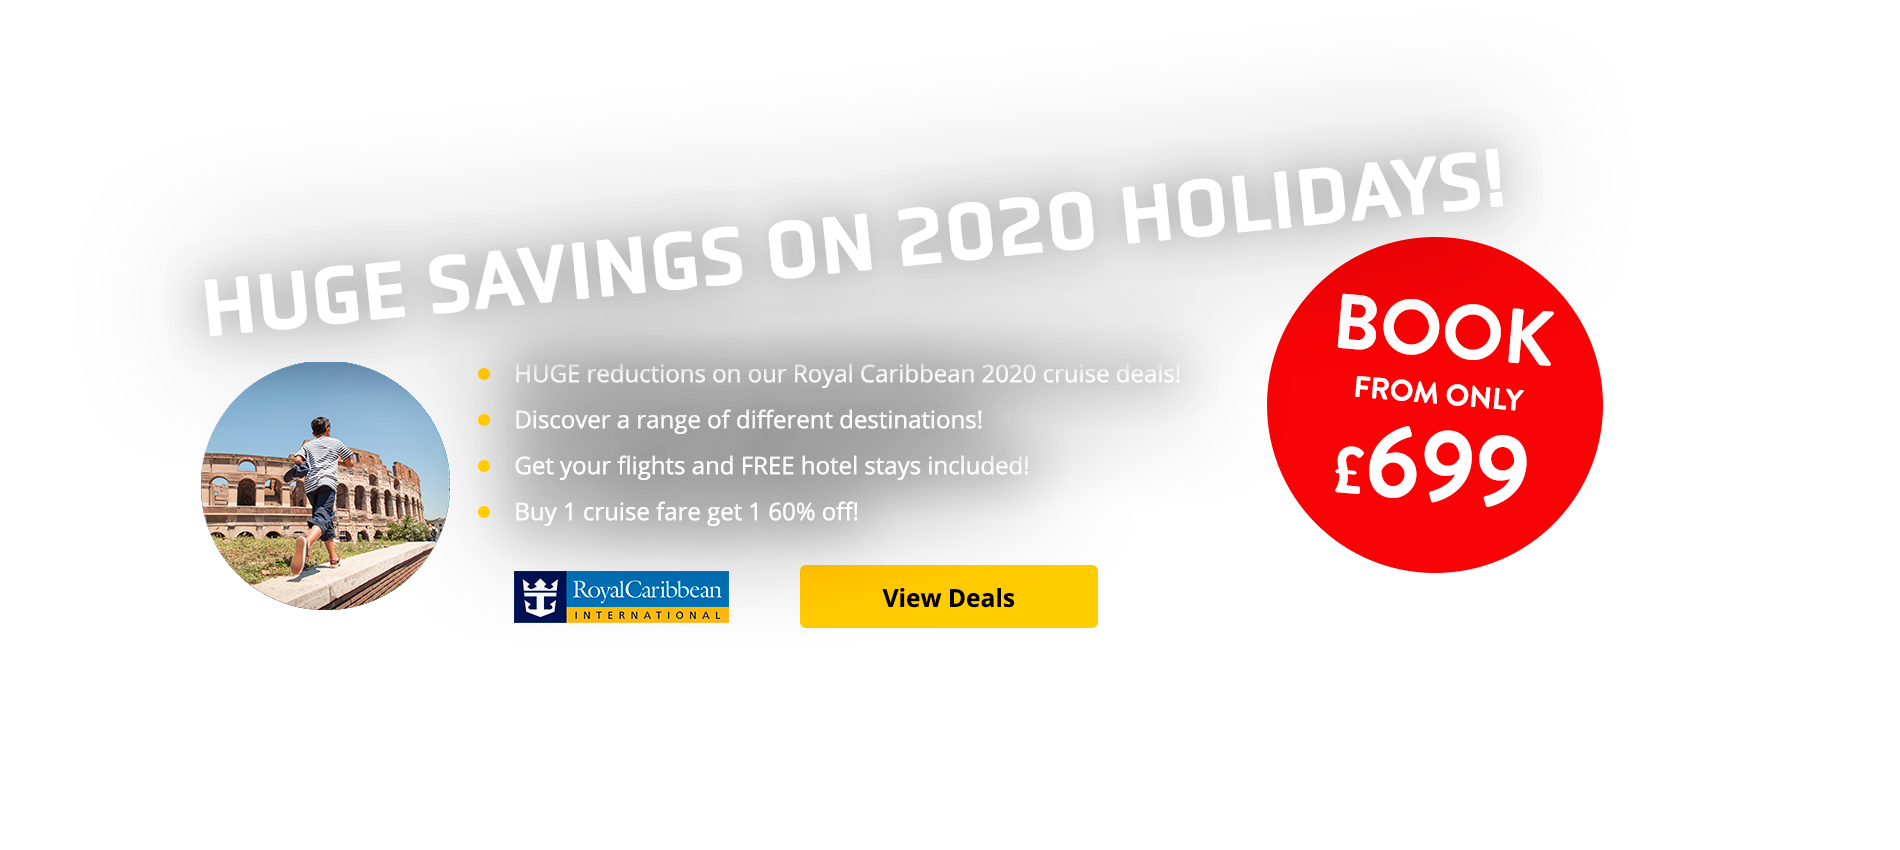 HUGE reductions on our Royal Caribbean 2020 cruise deals! Discover a range of different destinations! Get your flights and FREE hotel stays included! Buy 1 cruise fare get 1 60% off! Plus get up to $200 onboard spend!